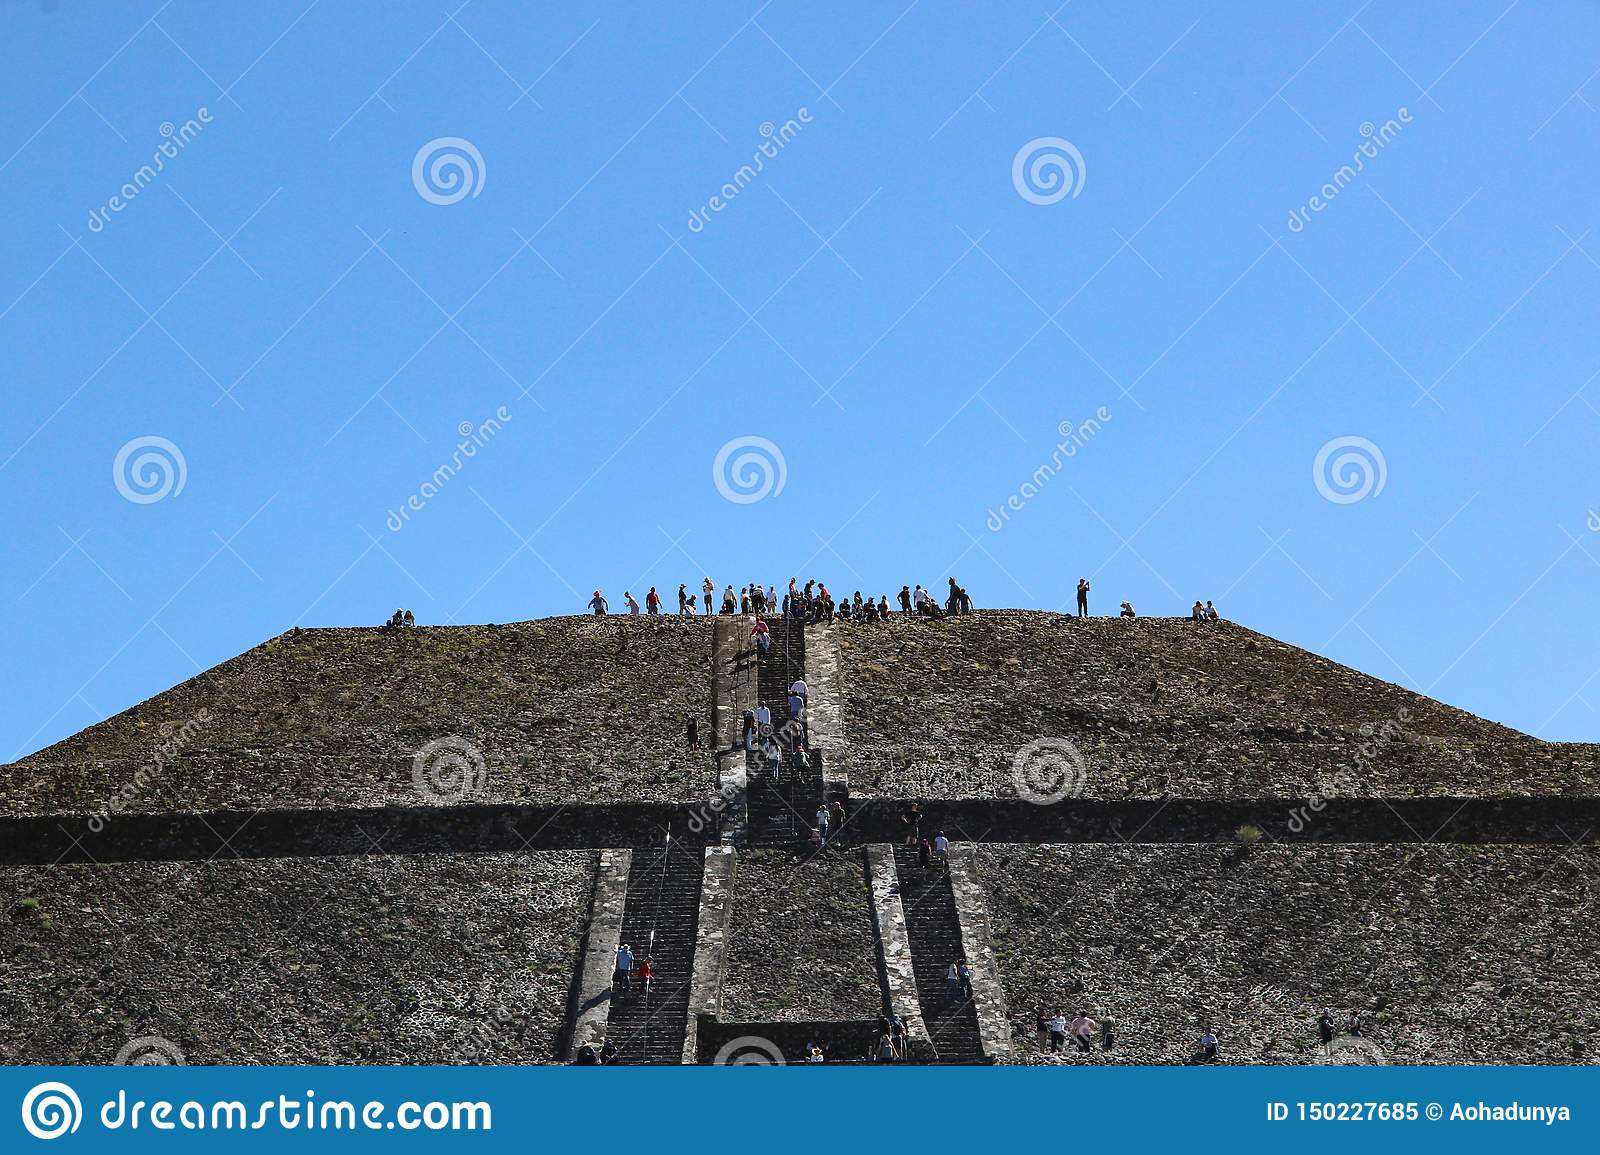 Pyramid of sun in Teotihuacan, Mexico City